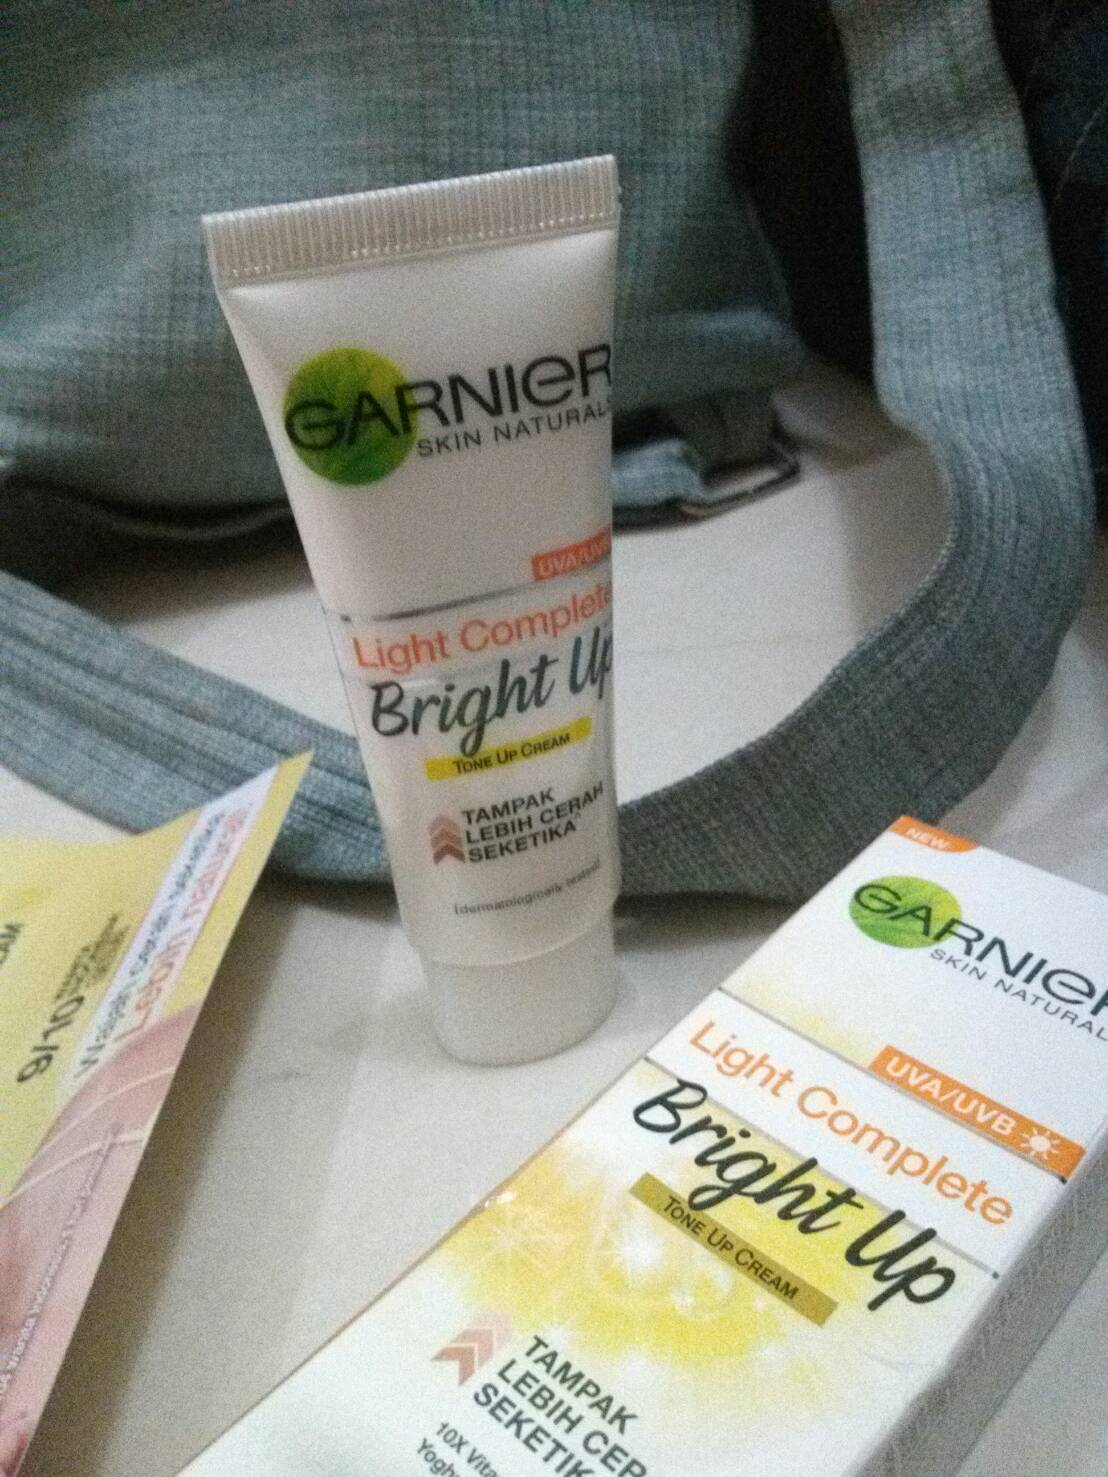 gambar review ke-1 untuk Garnier Light Complete Bright Up Tone Up Cream